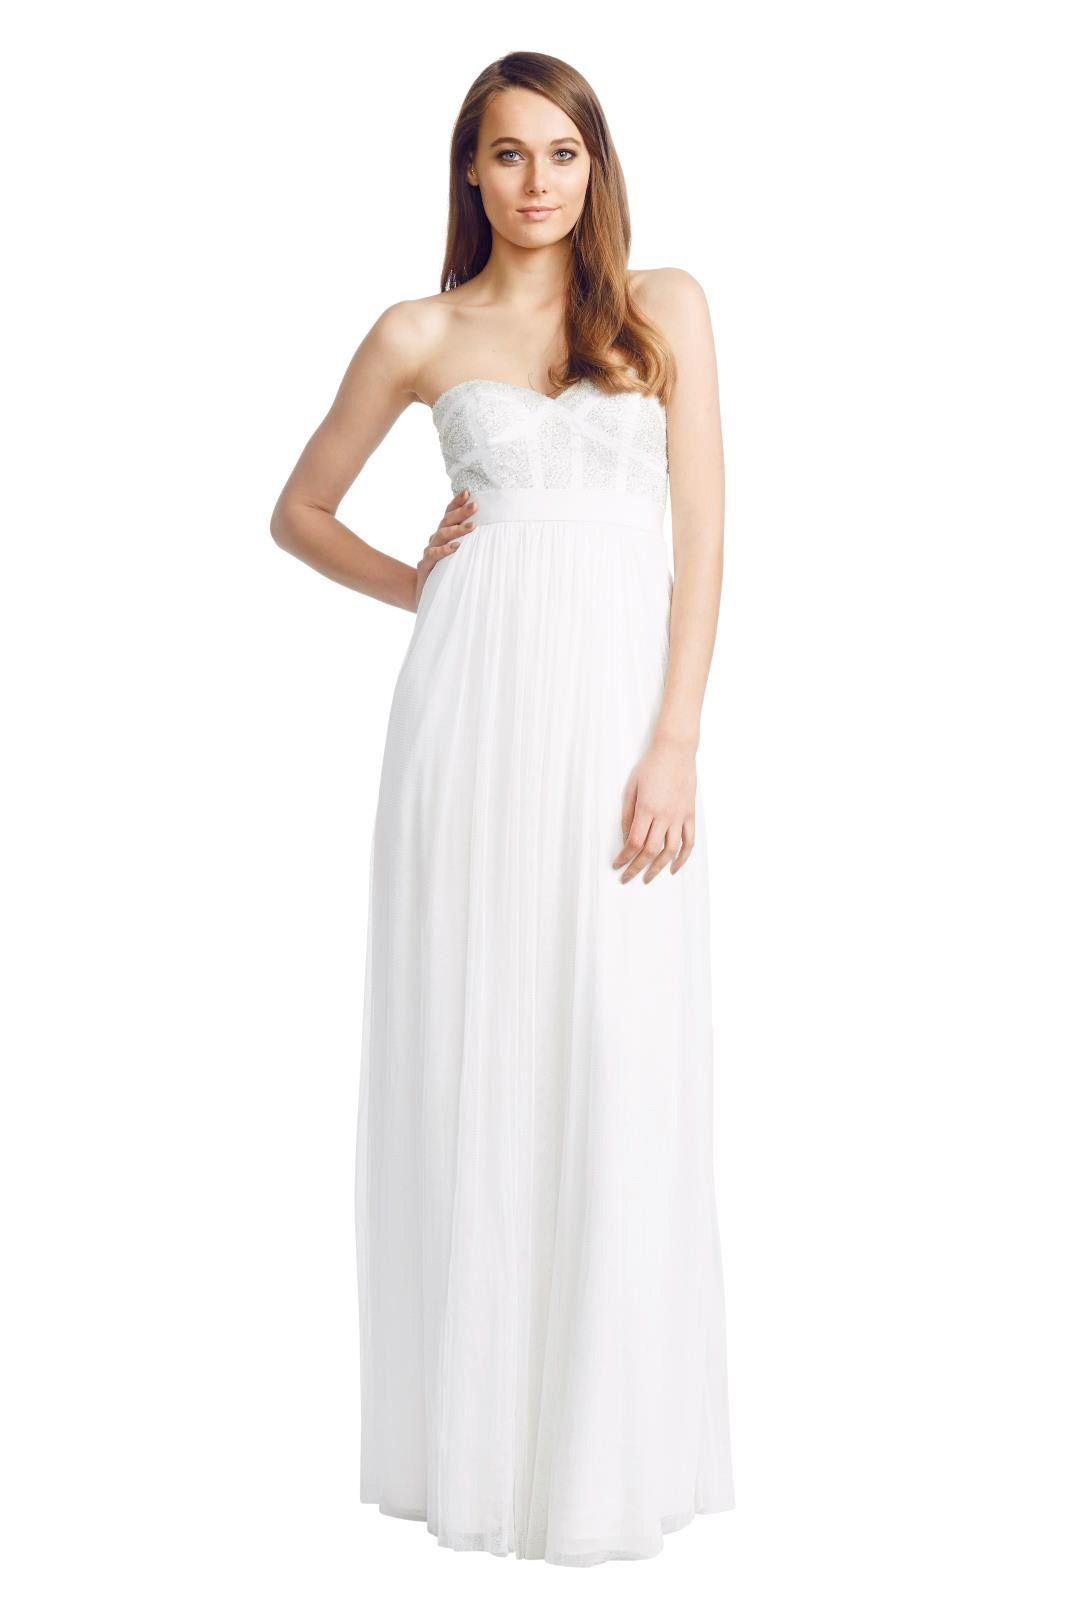 George - Pixel Gown - White - Front